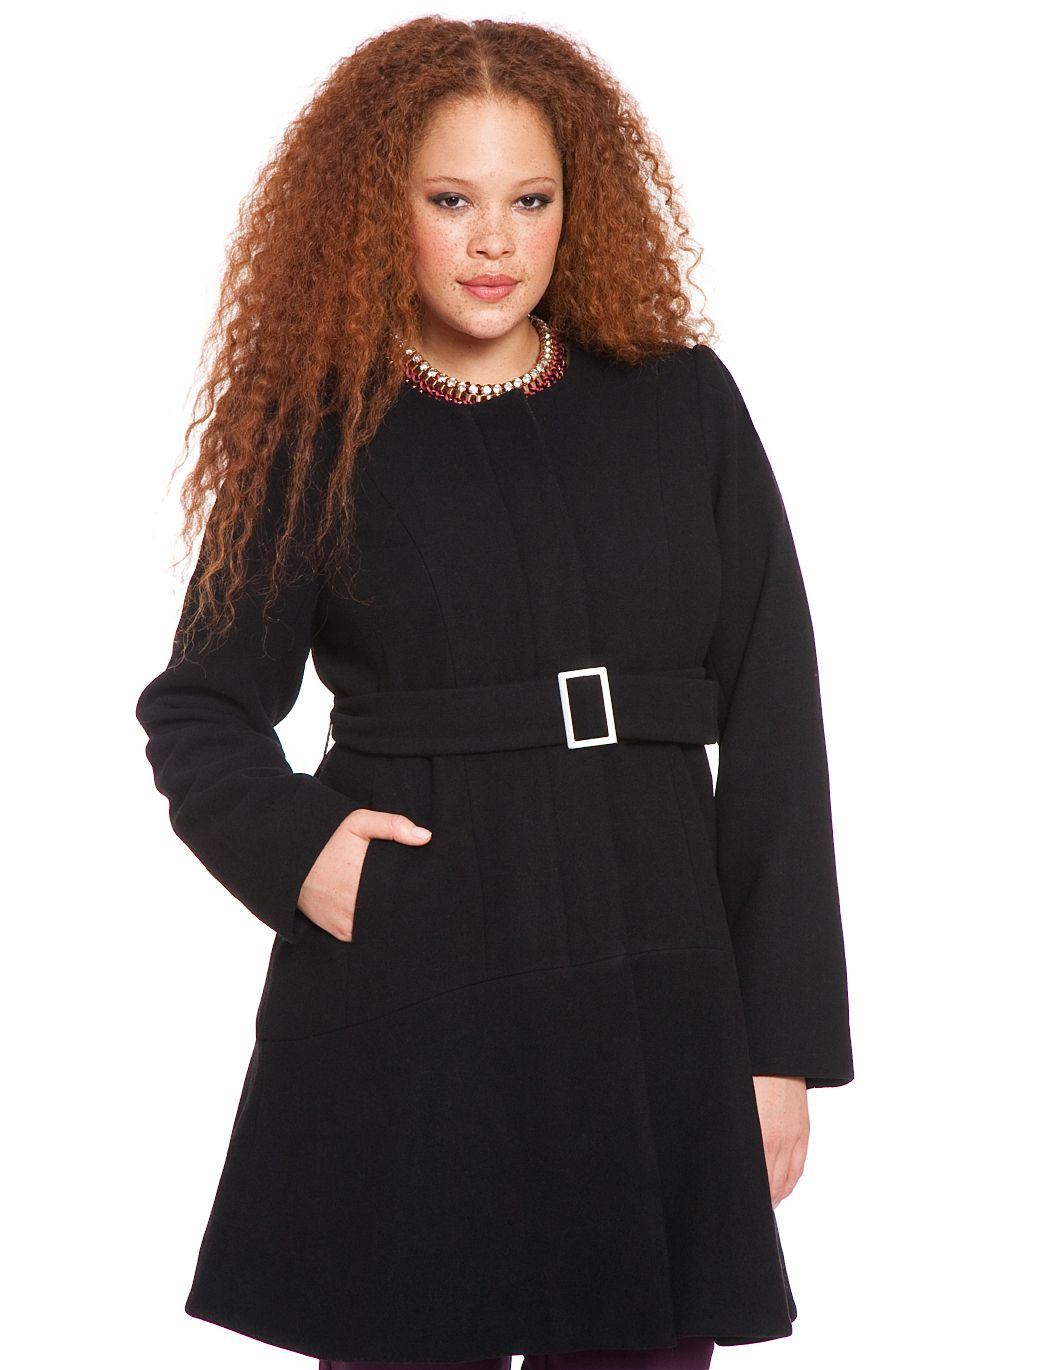 Studio Skirted Dress Coat | Women\'s Plus Size Jackets | ELOQUII ...